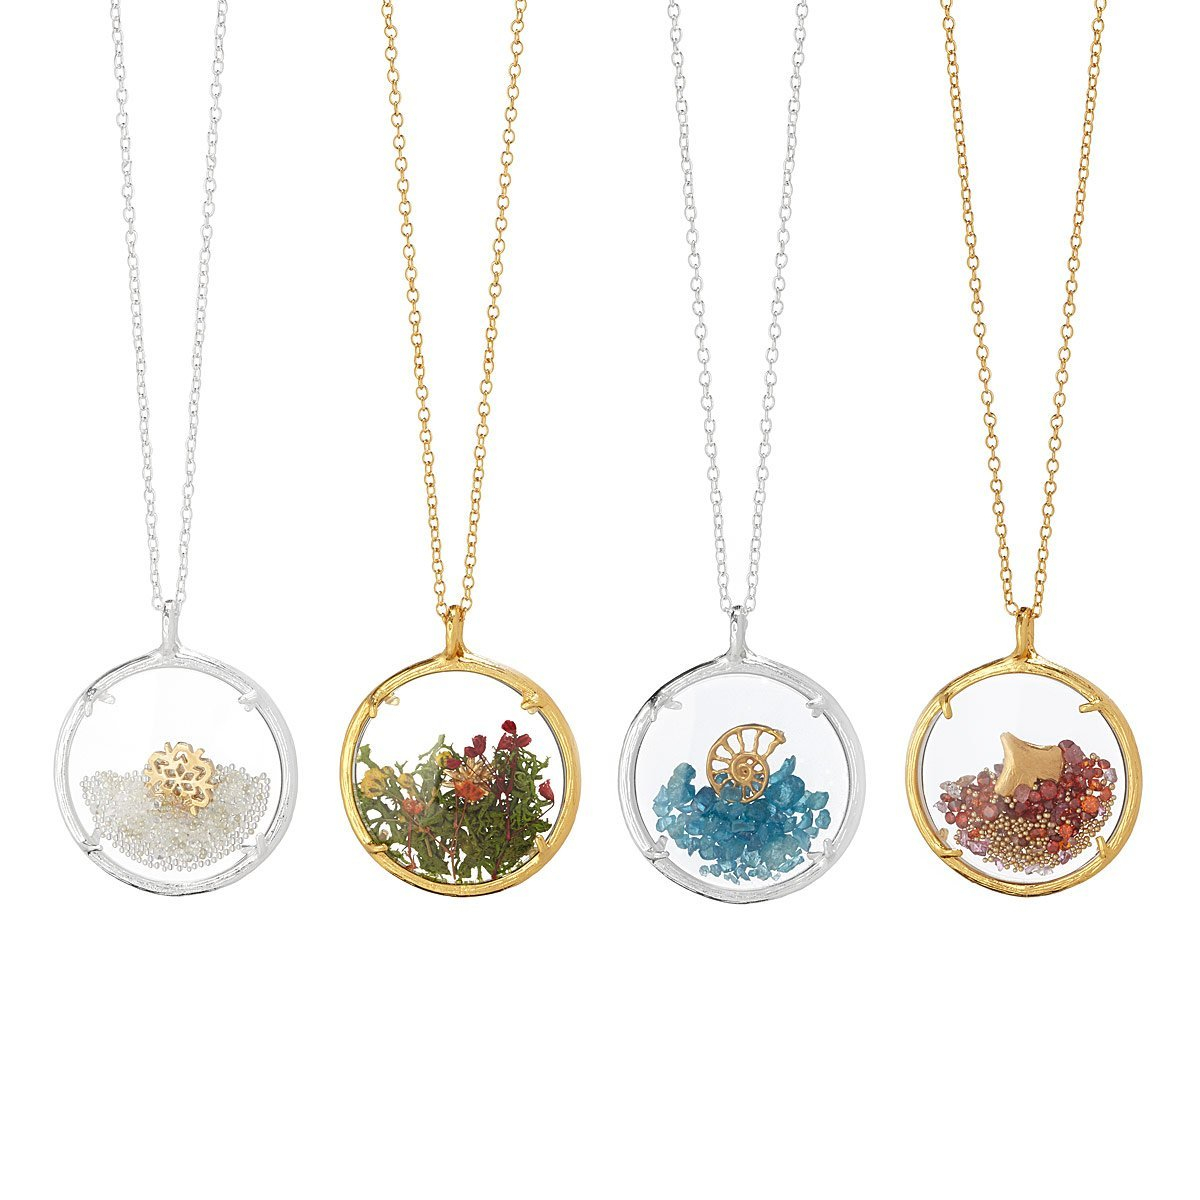 Four Seasons Glass Necklaces | Glass Jewelry, Glass Necklace Intended For Most Recent Classic Flower Locket Element Necklaces (Gallery 25 of 25)